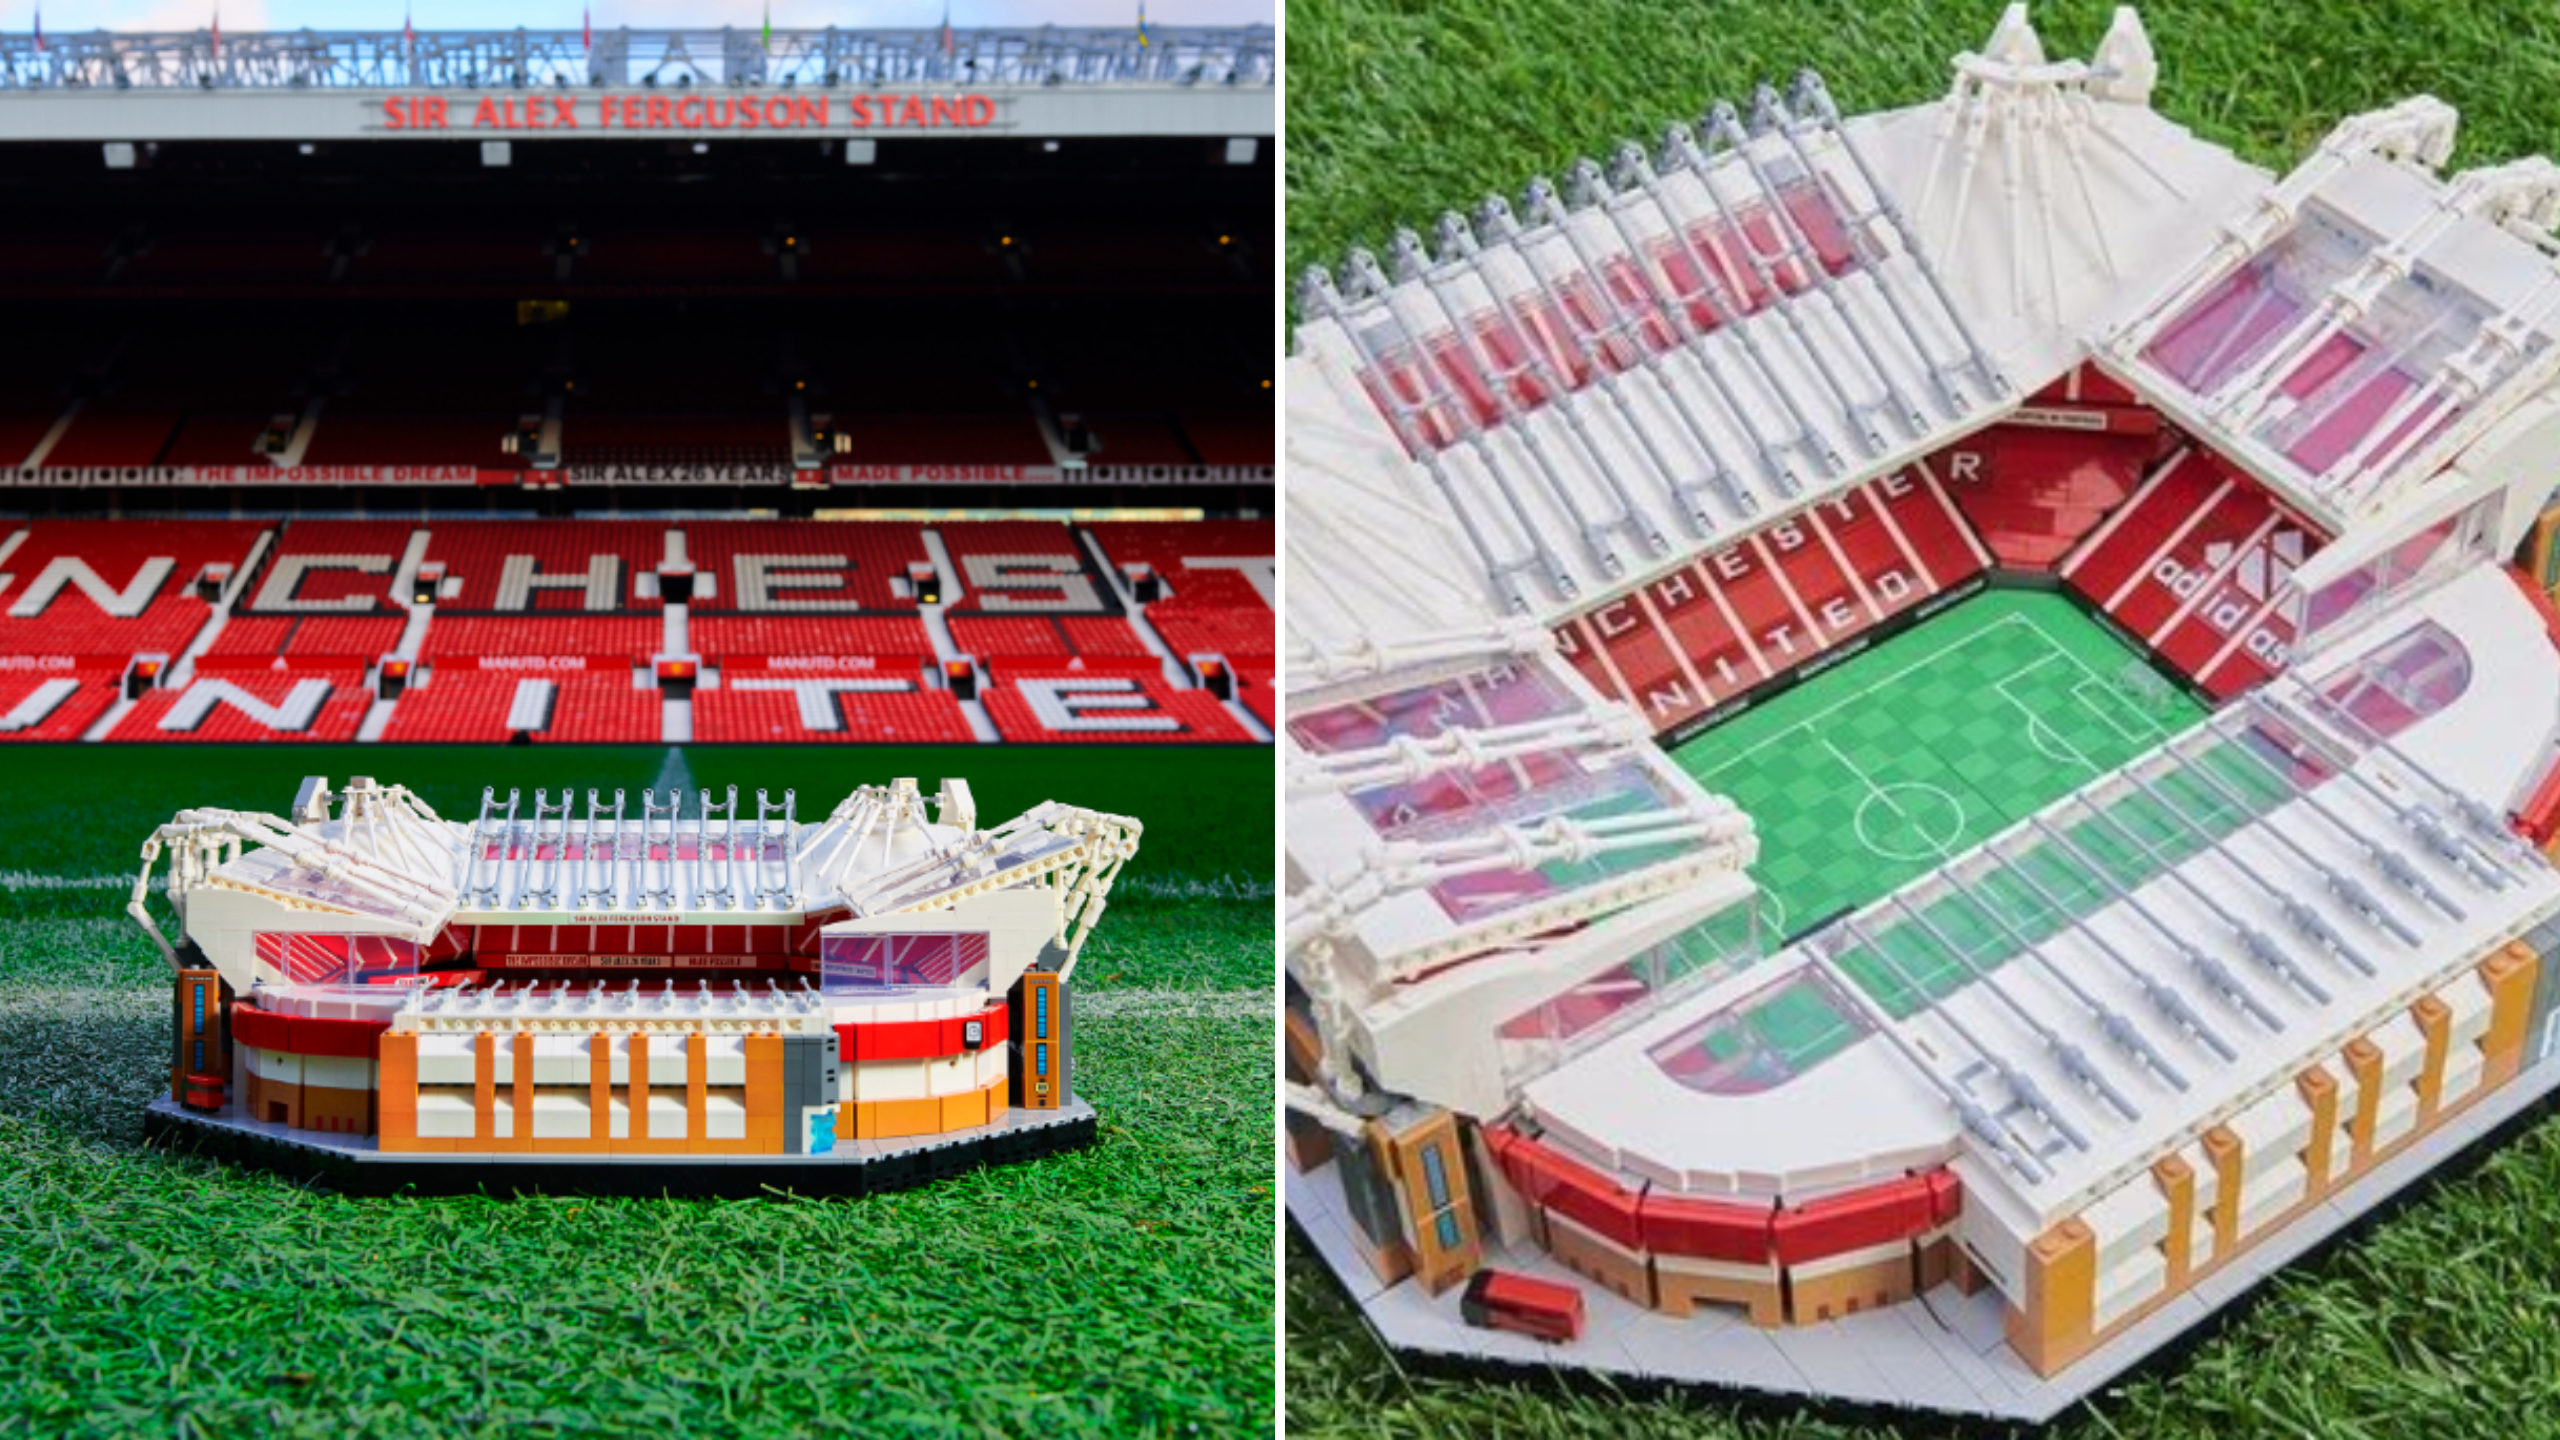 manchester united lego release 3898 piece set of old trafford sportbible